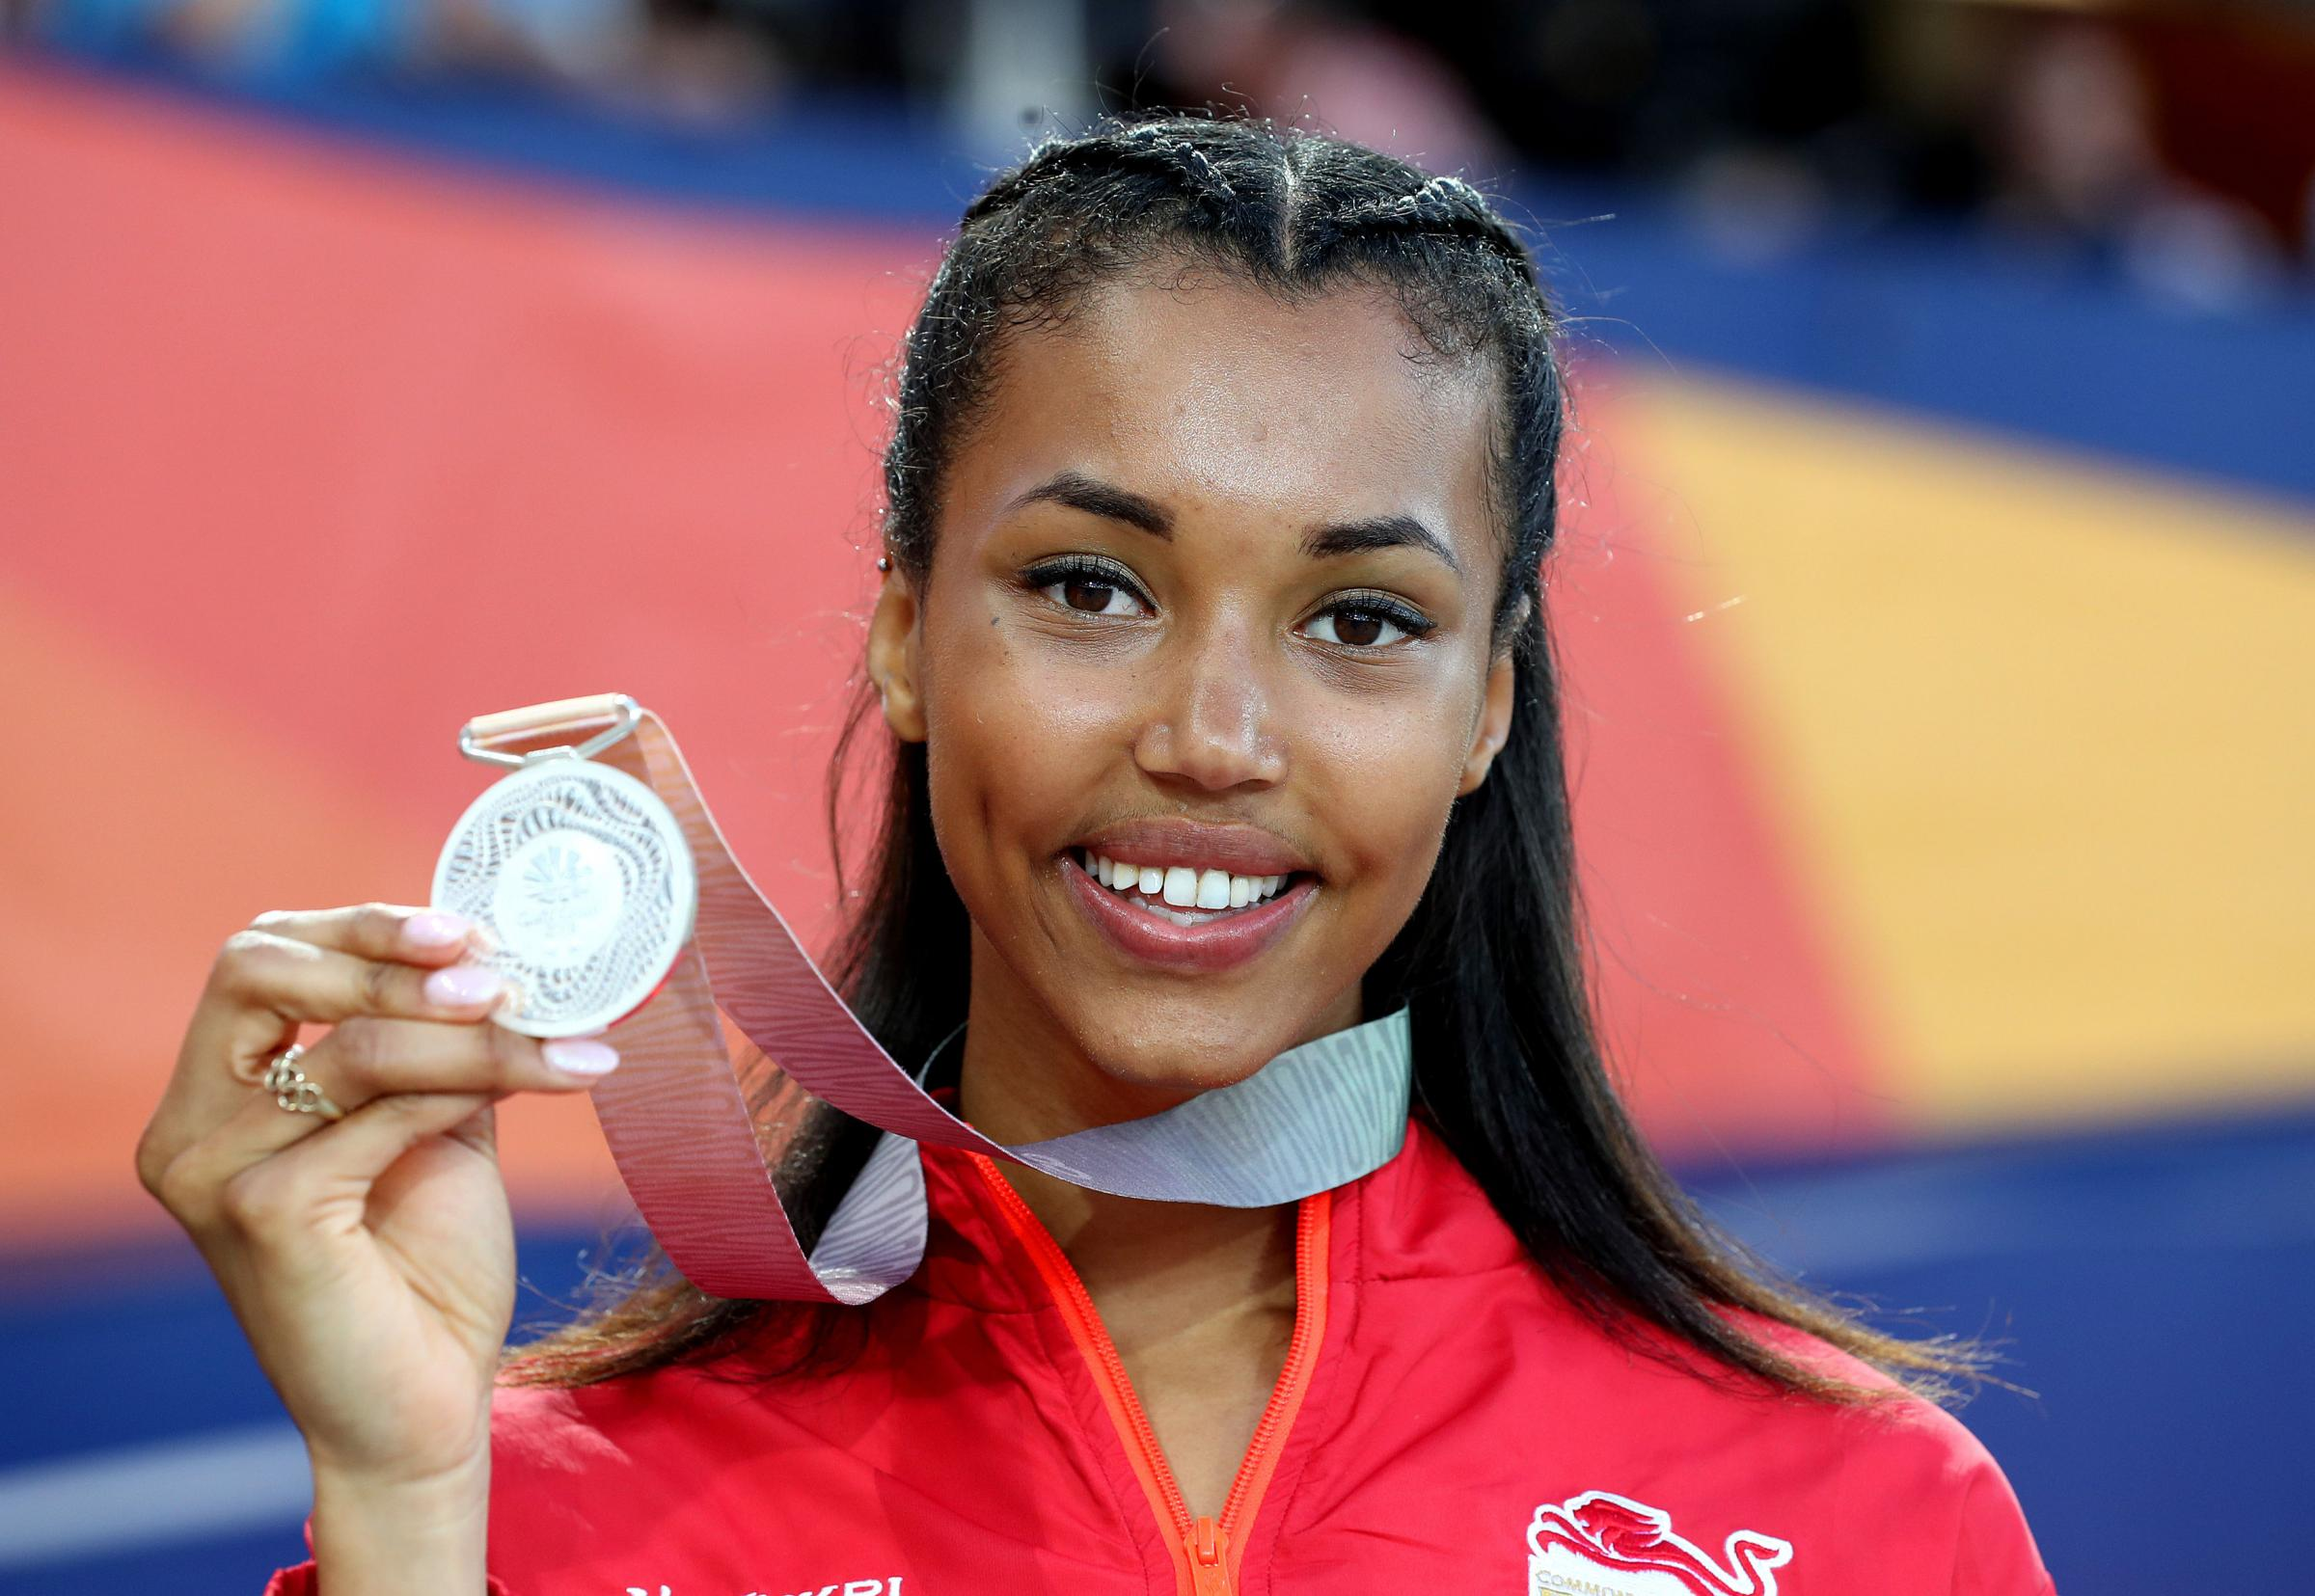 England and WSEH Athletics Club star Morgan Lake celebrates with the silver medal won in the high jump at the Commonwealth Games. Martin Rickett/PA Wire.